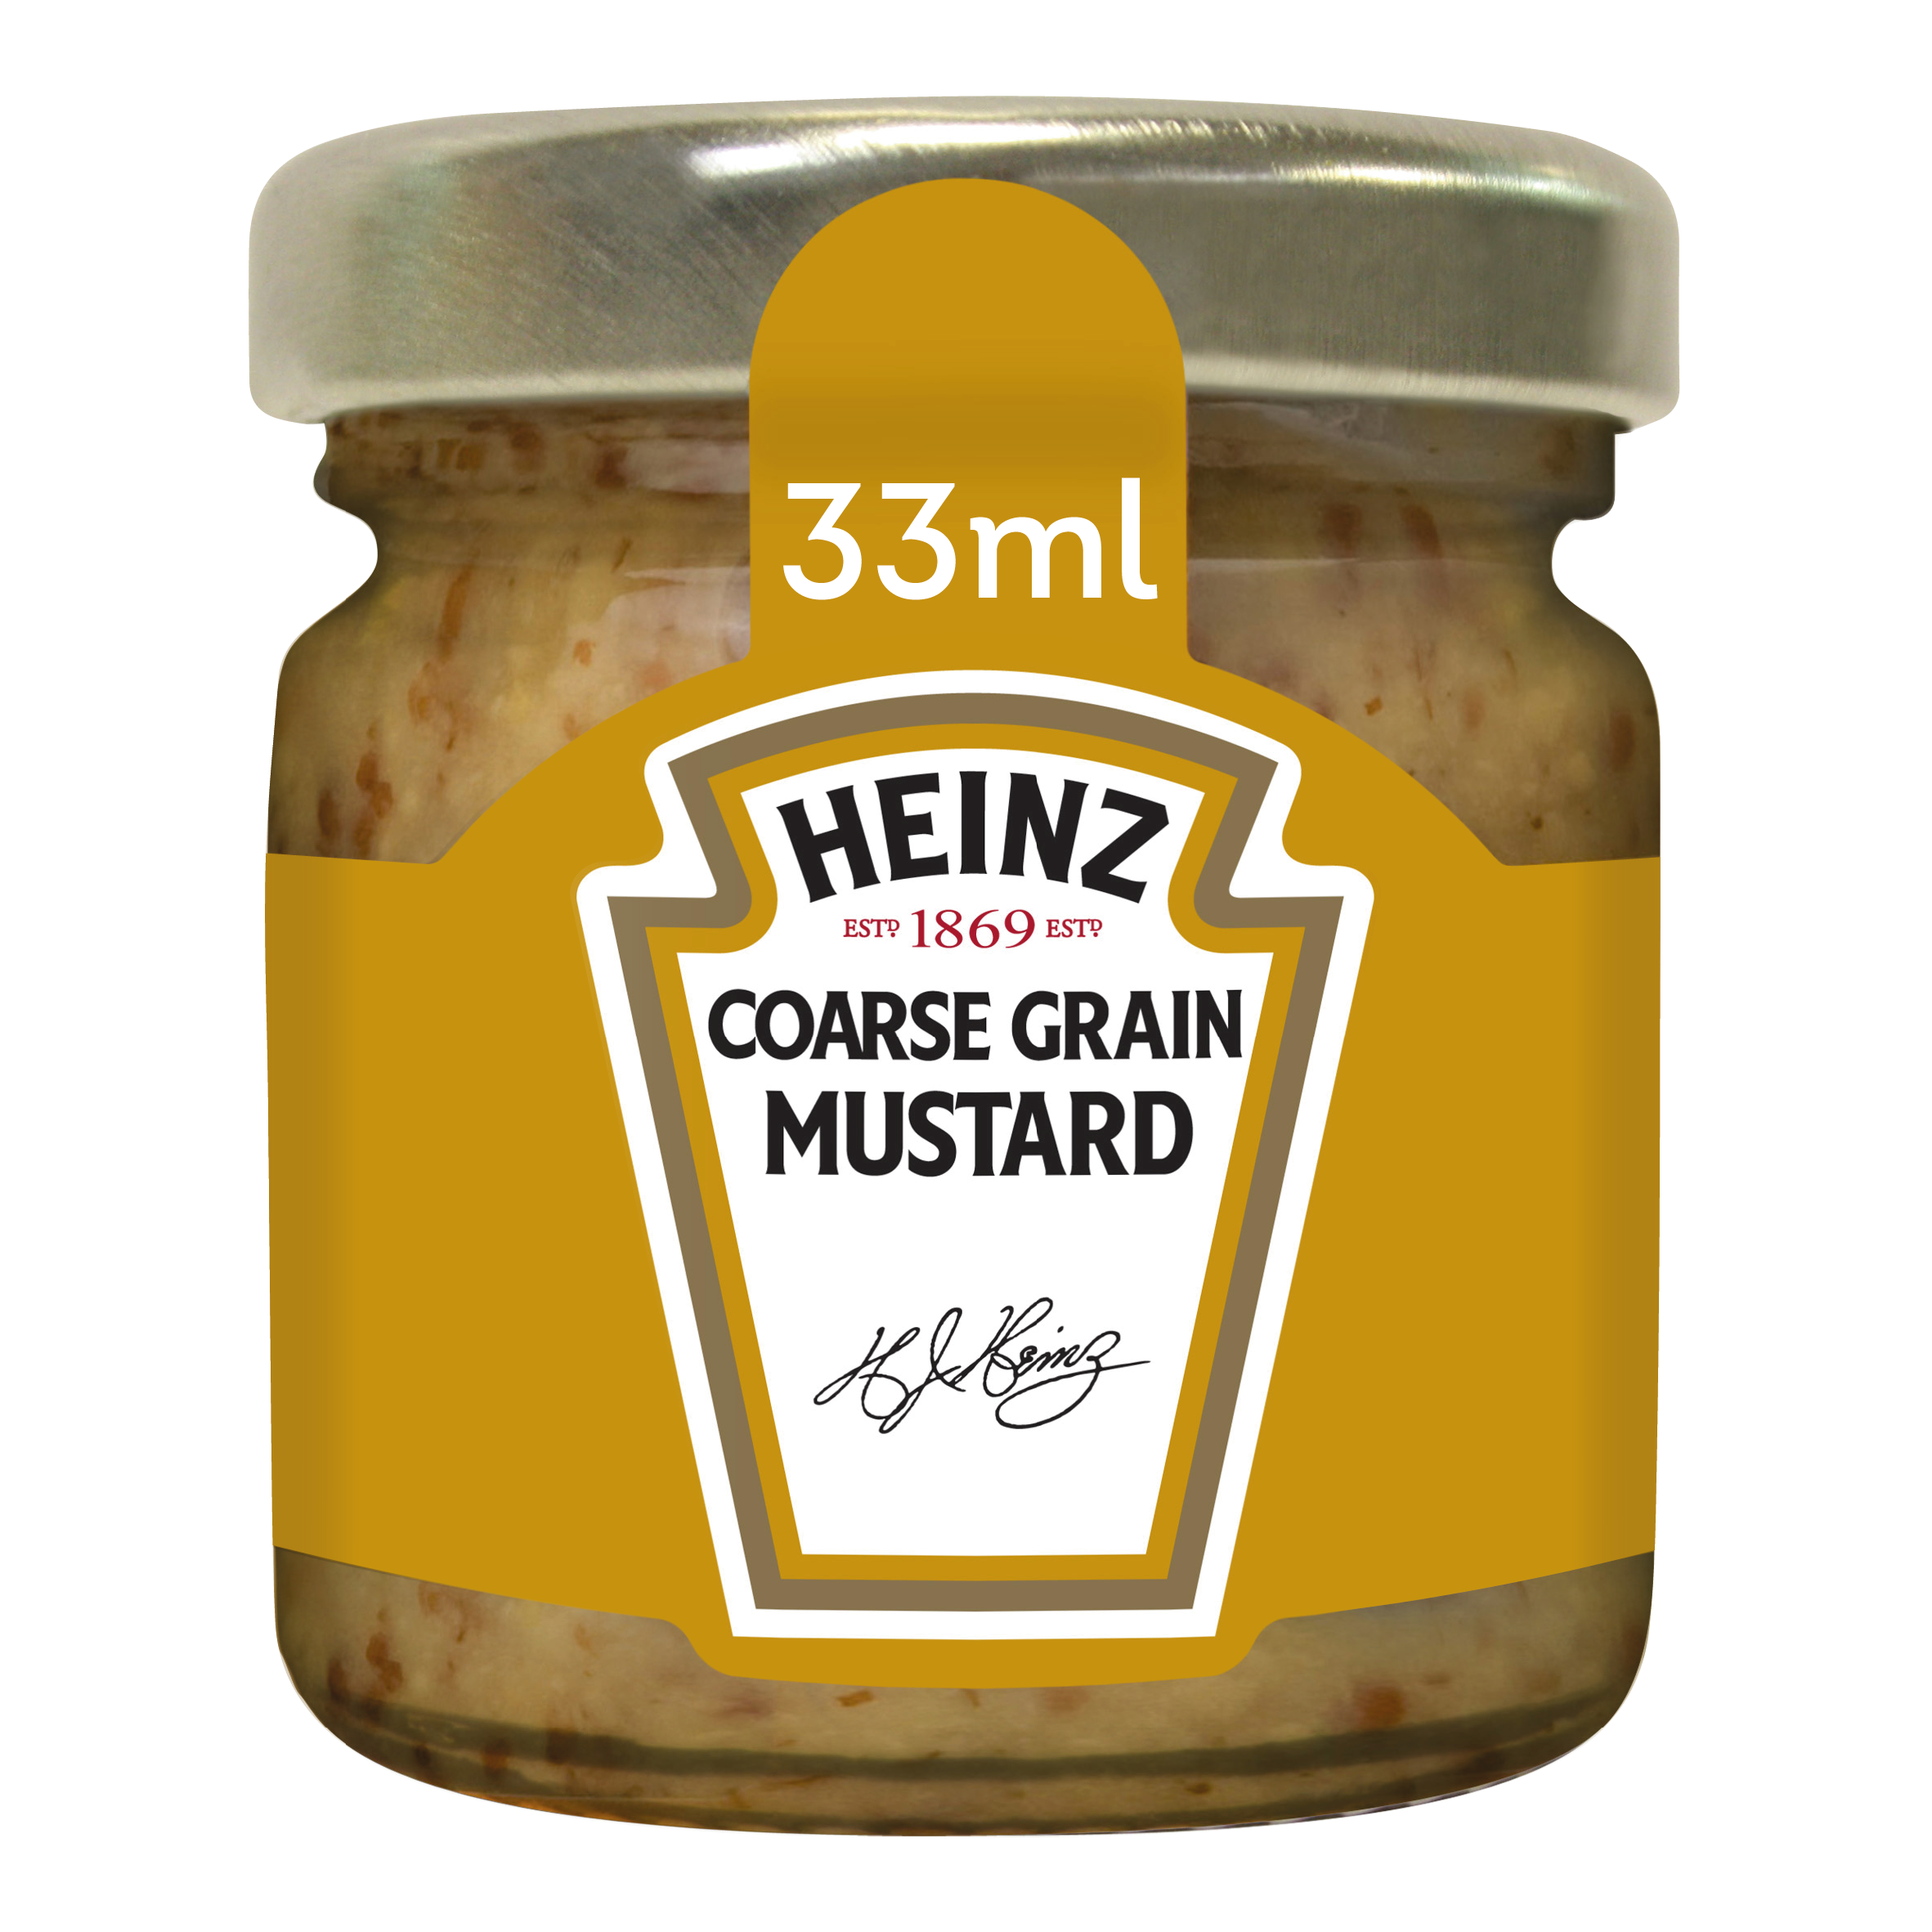 Heinz Mustard 33ml Premium Mini Jars image